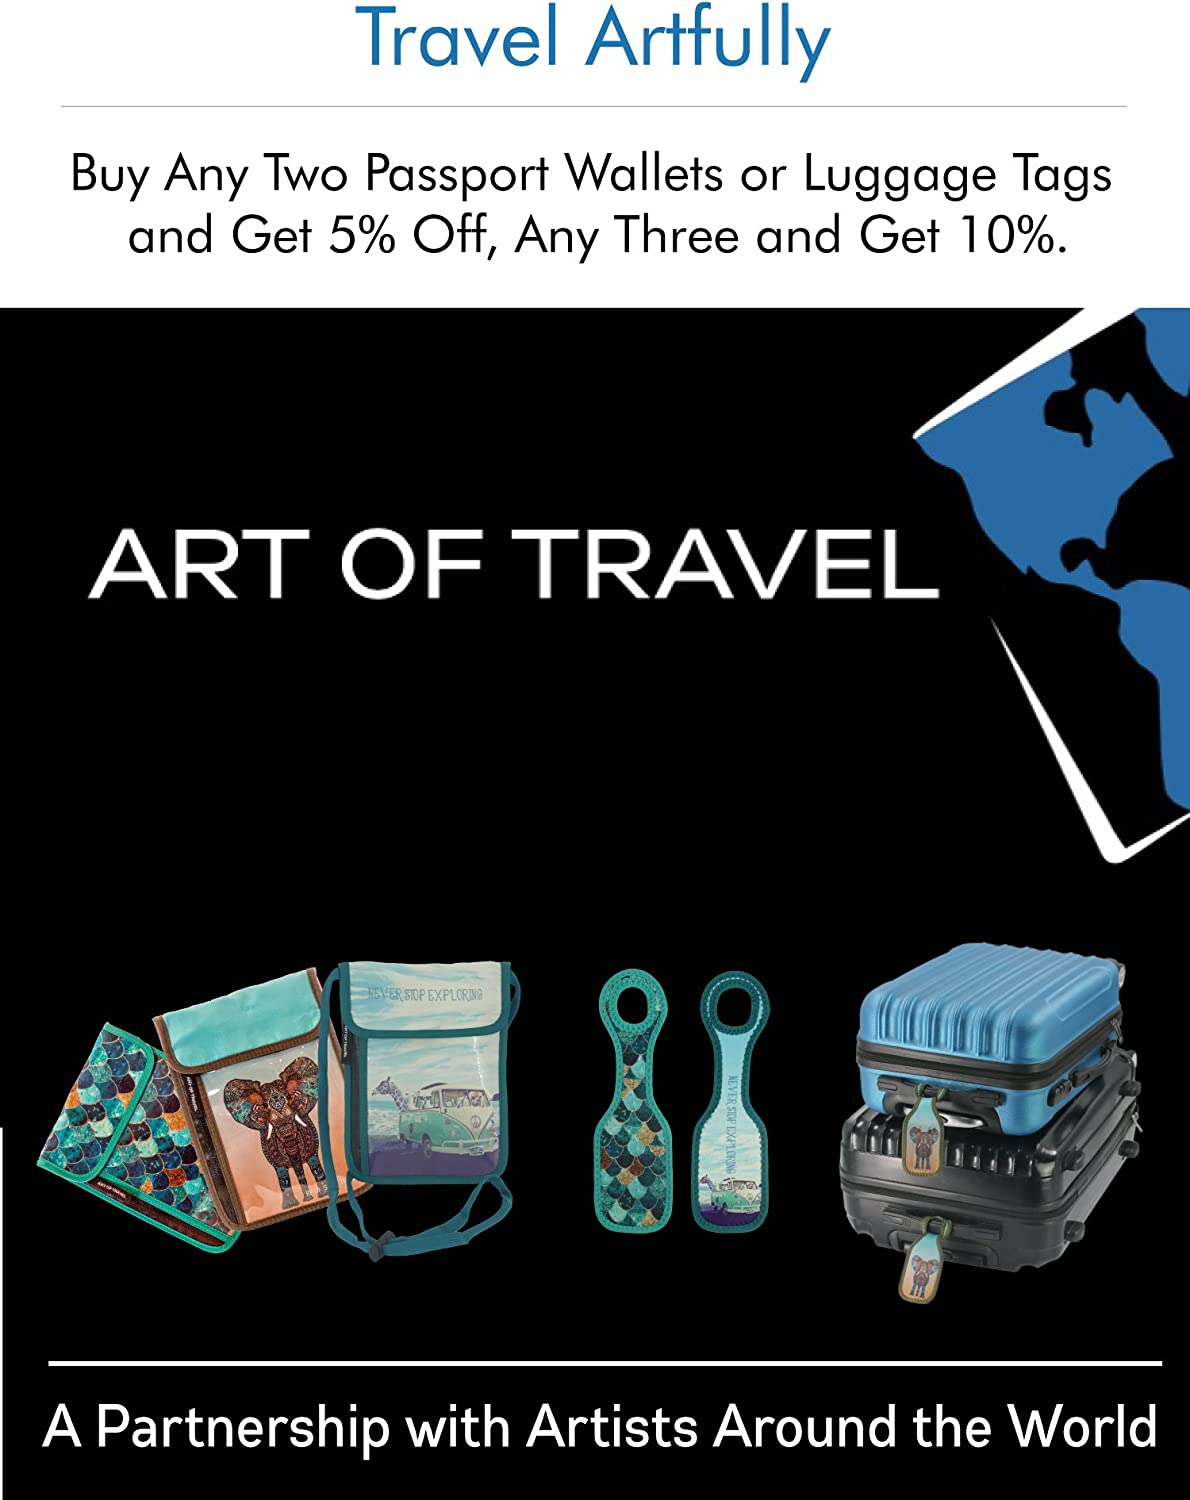   Neoprene Designer Luggage Tags by ART OF TRAVEL - Birches   Luggage Tags